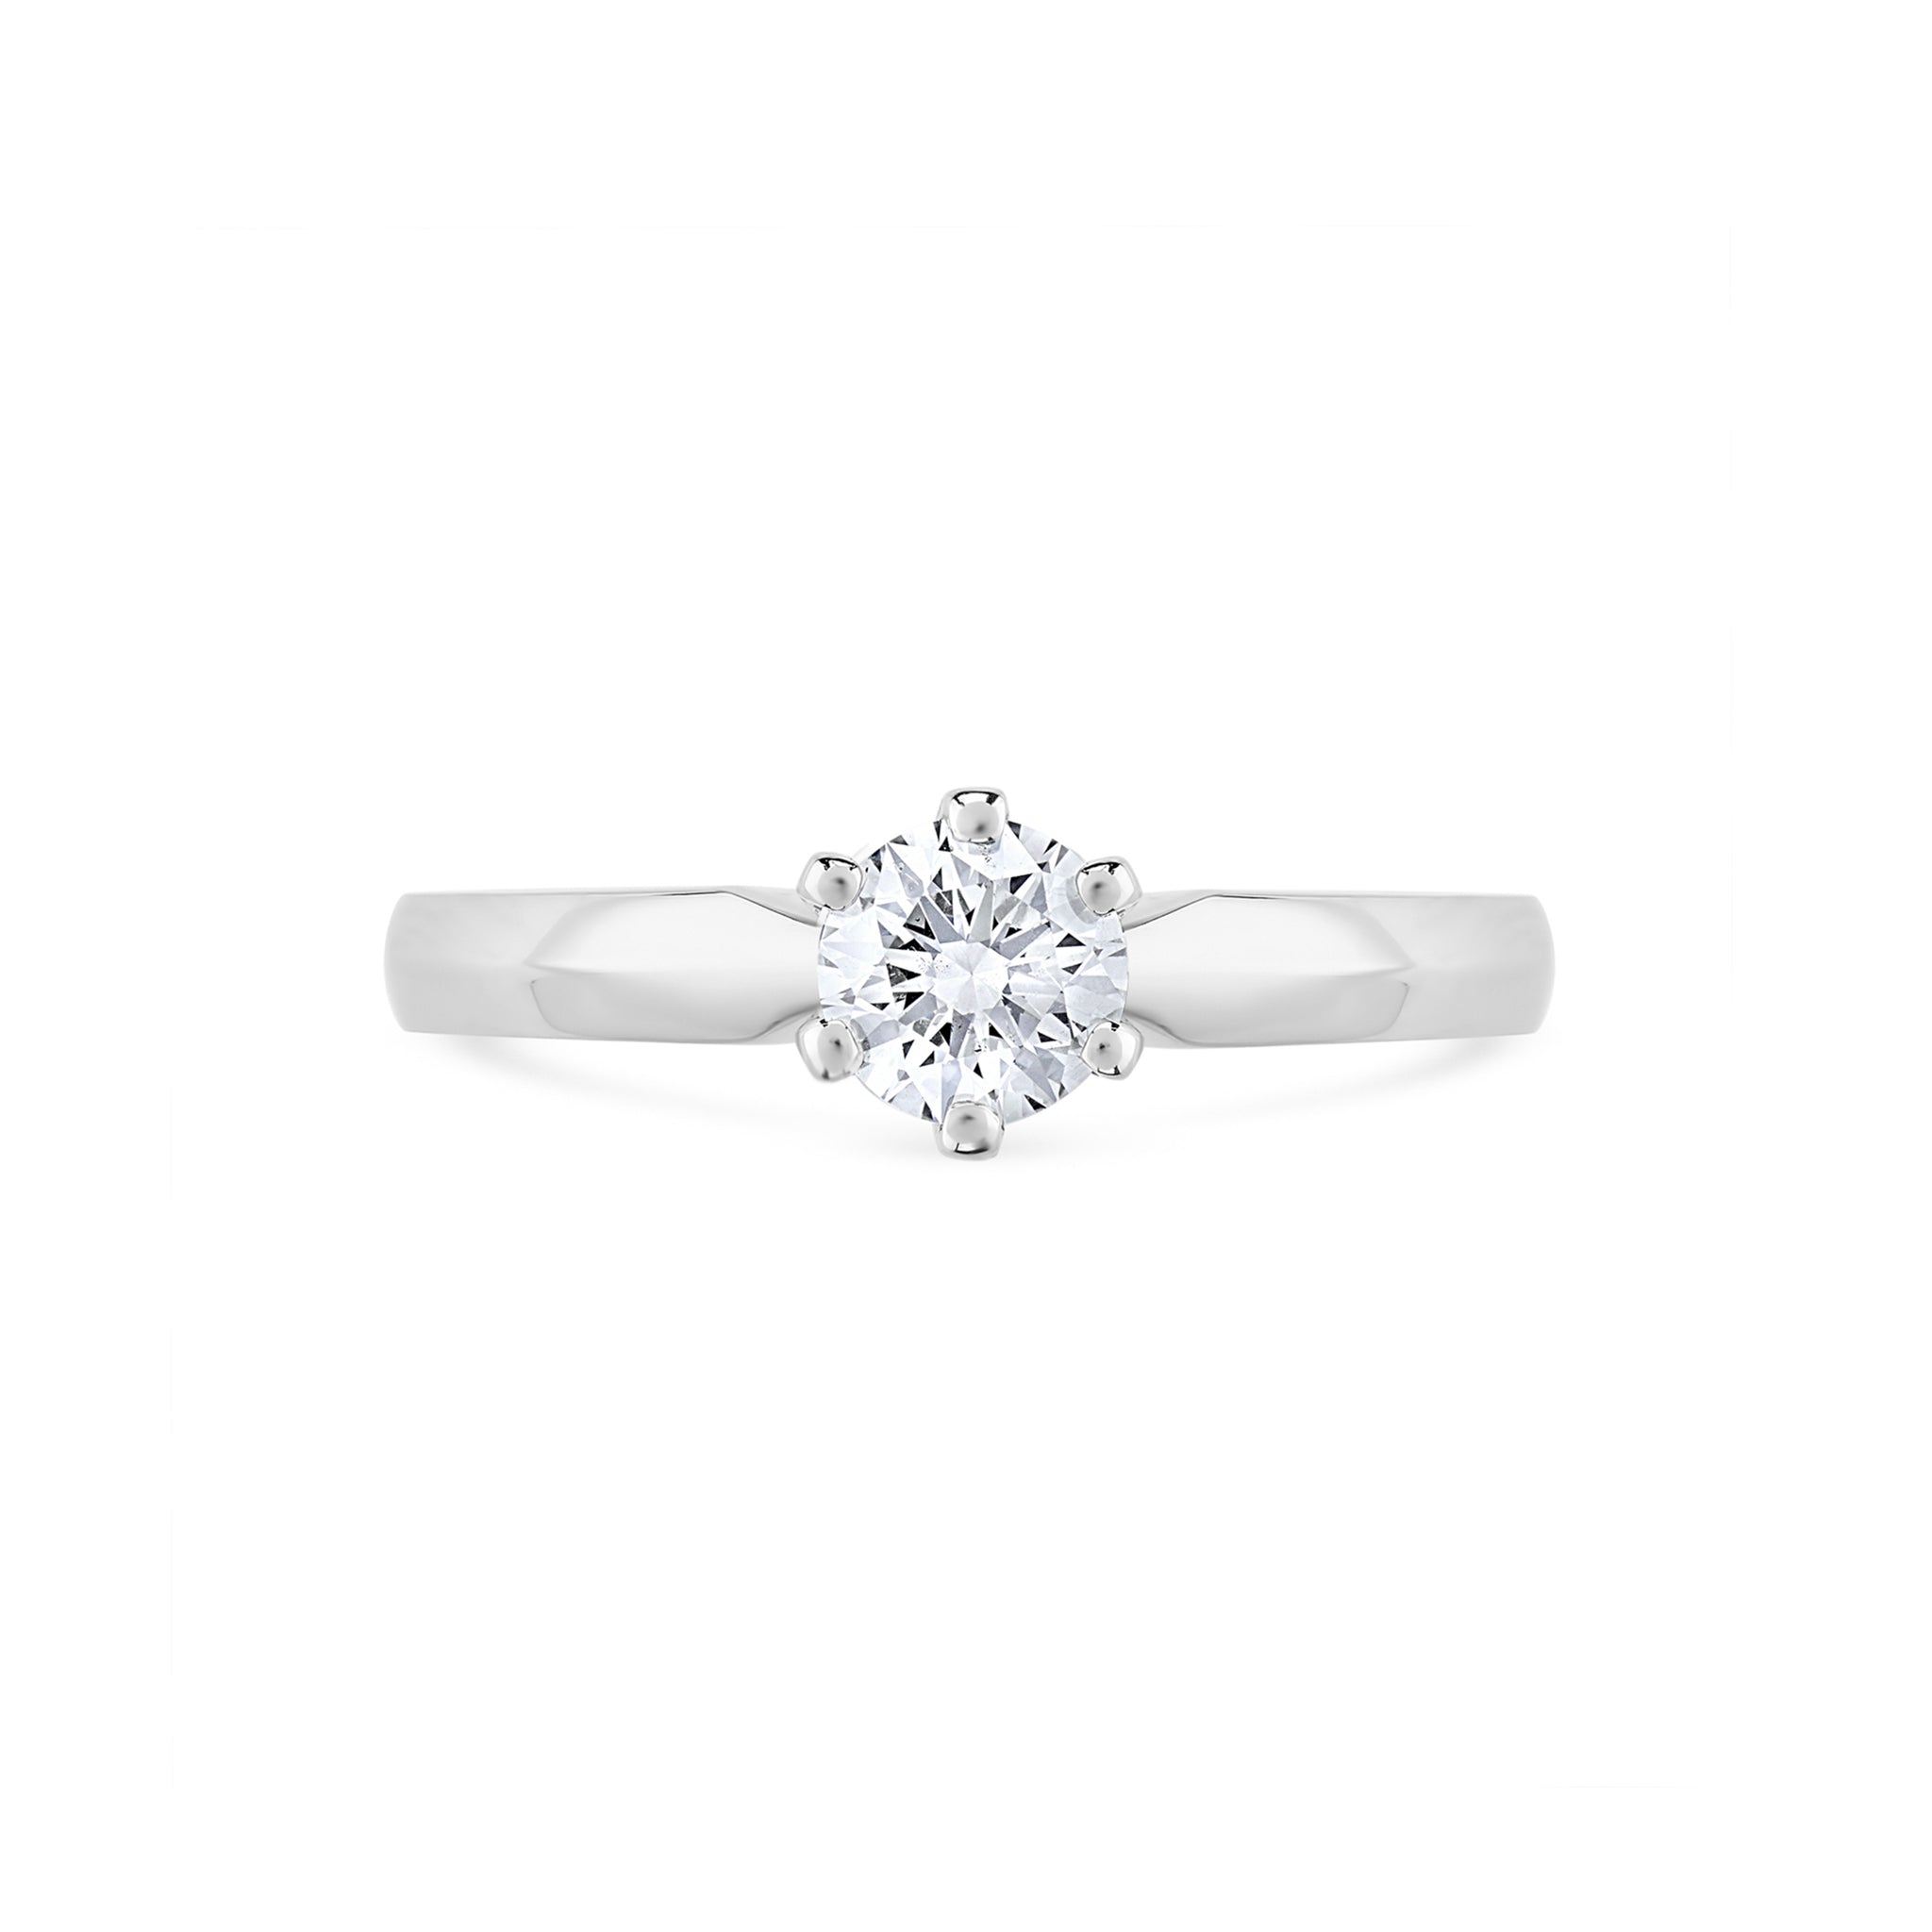 Round Brilliant Diamond Six Claw Solitaire Engagement Ring